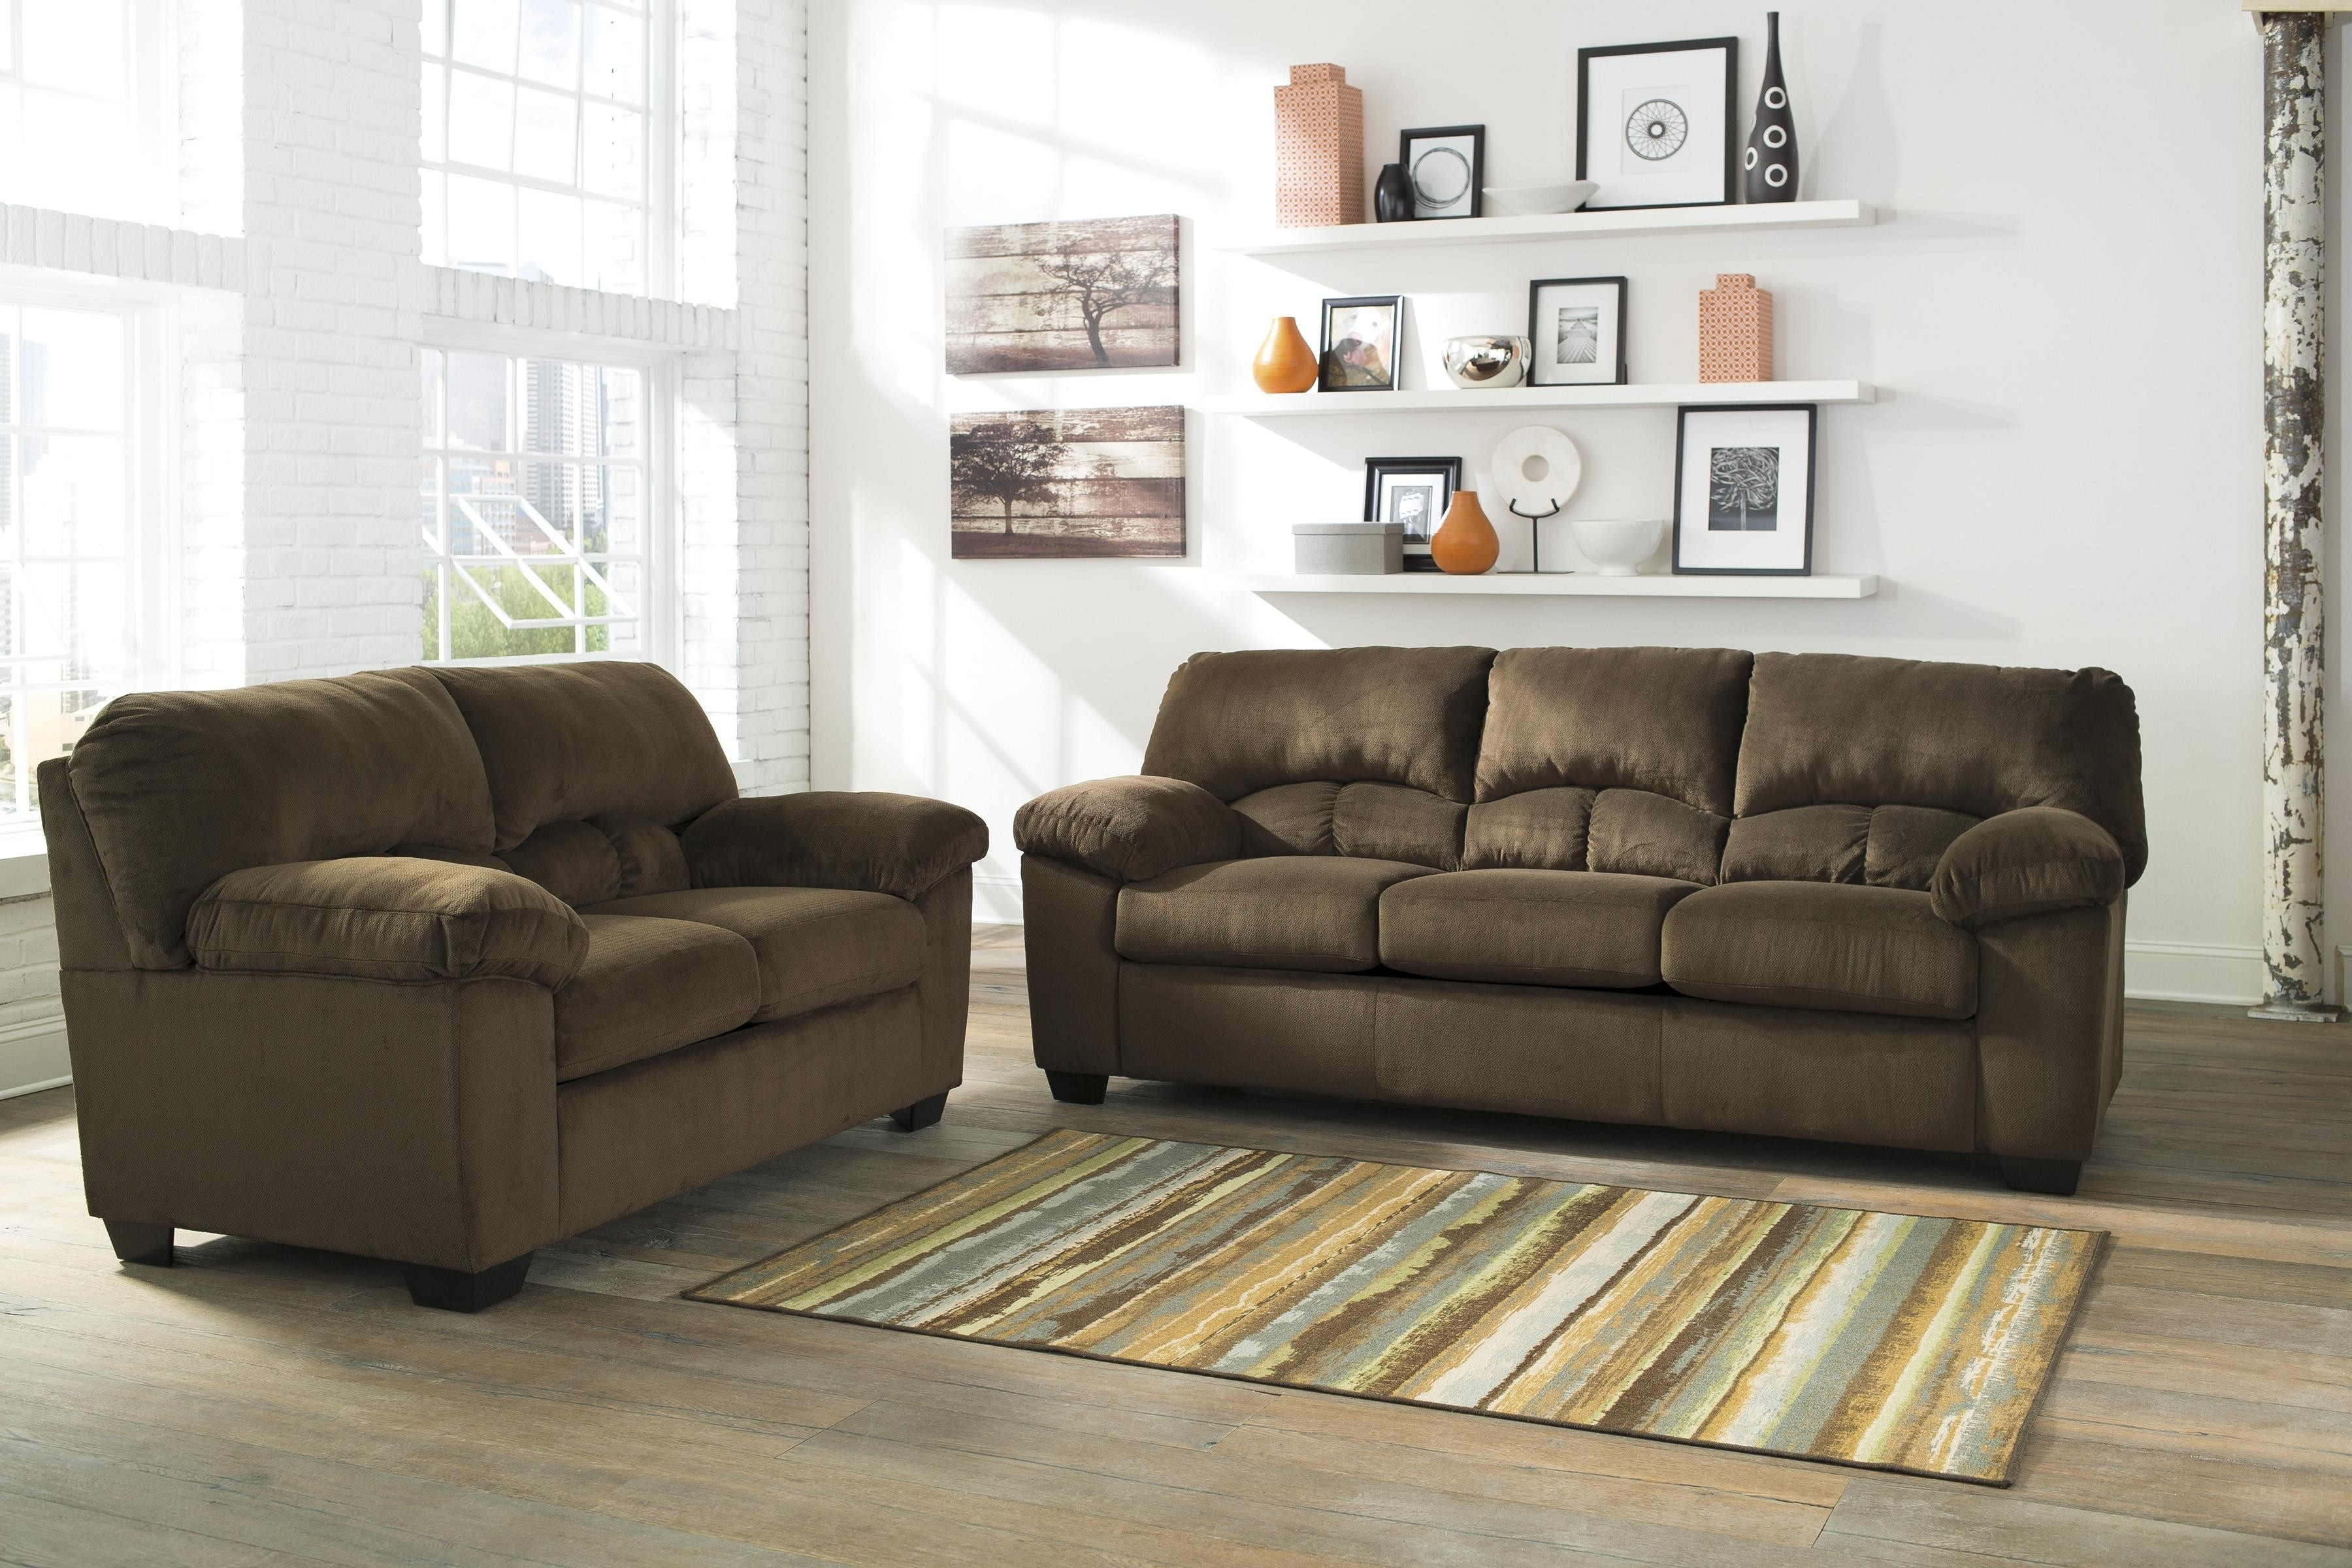 Ashley Furniture In Harrisburg Pa With Regard To Most Current Harrisburg Pa Sectional Sofas (View 1 of 15)